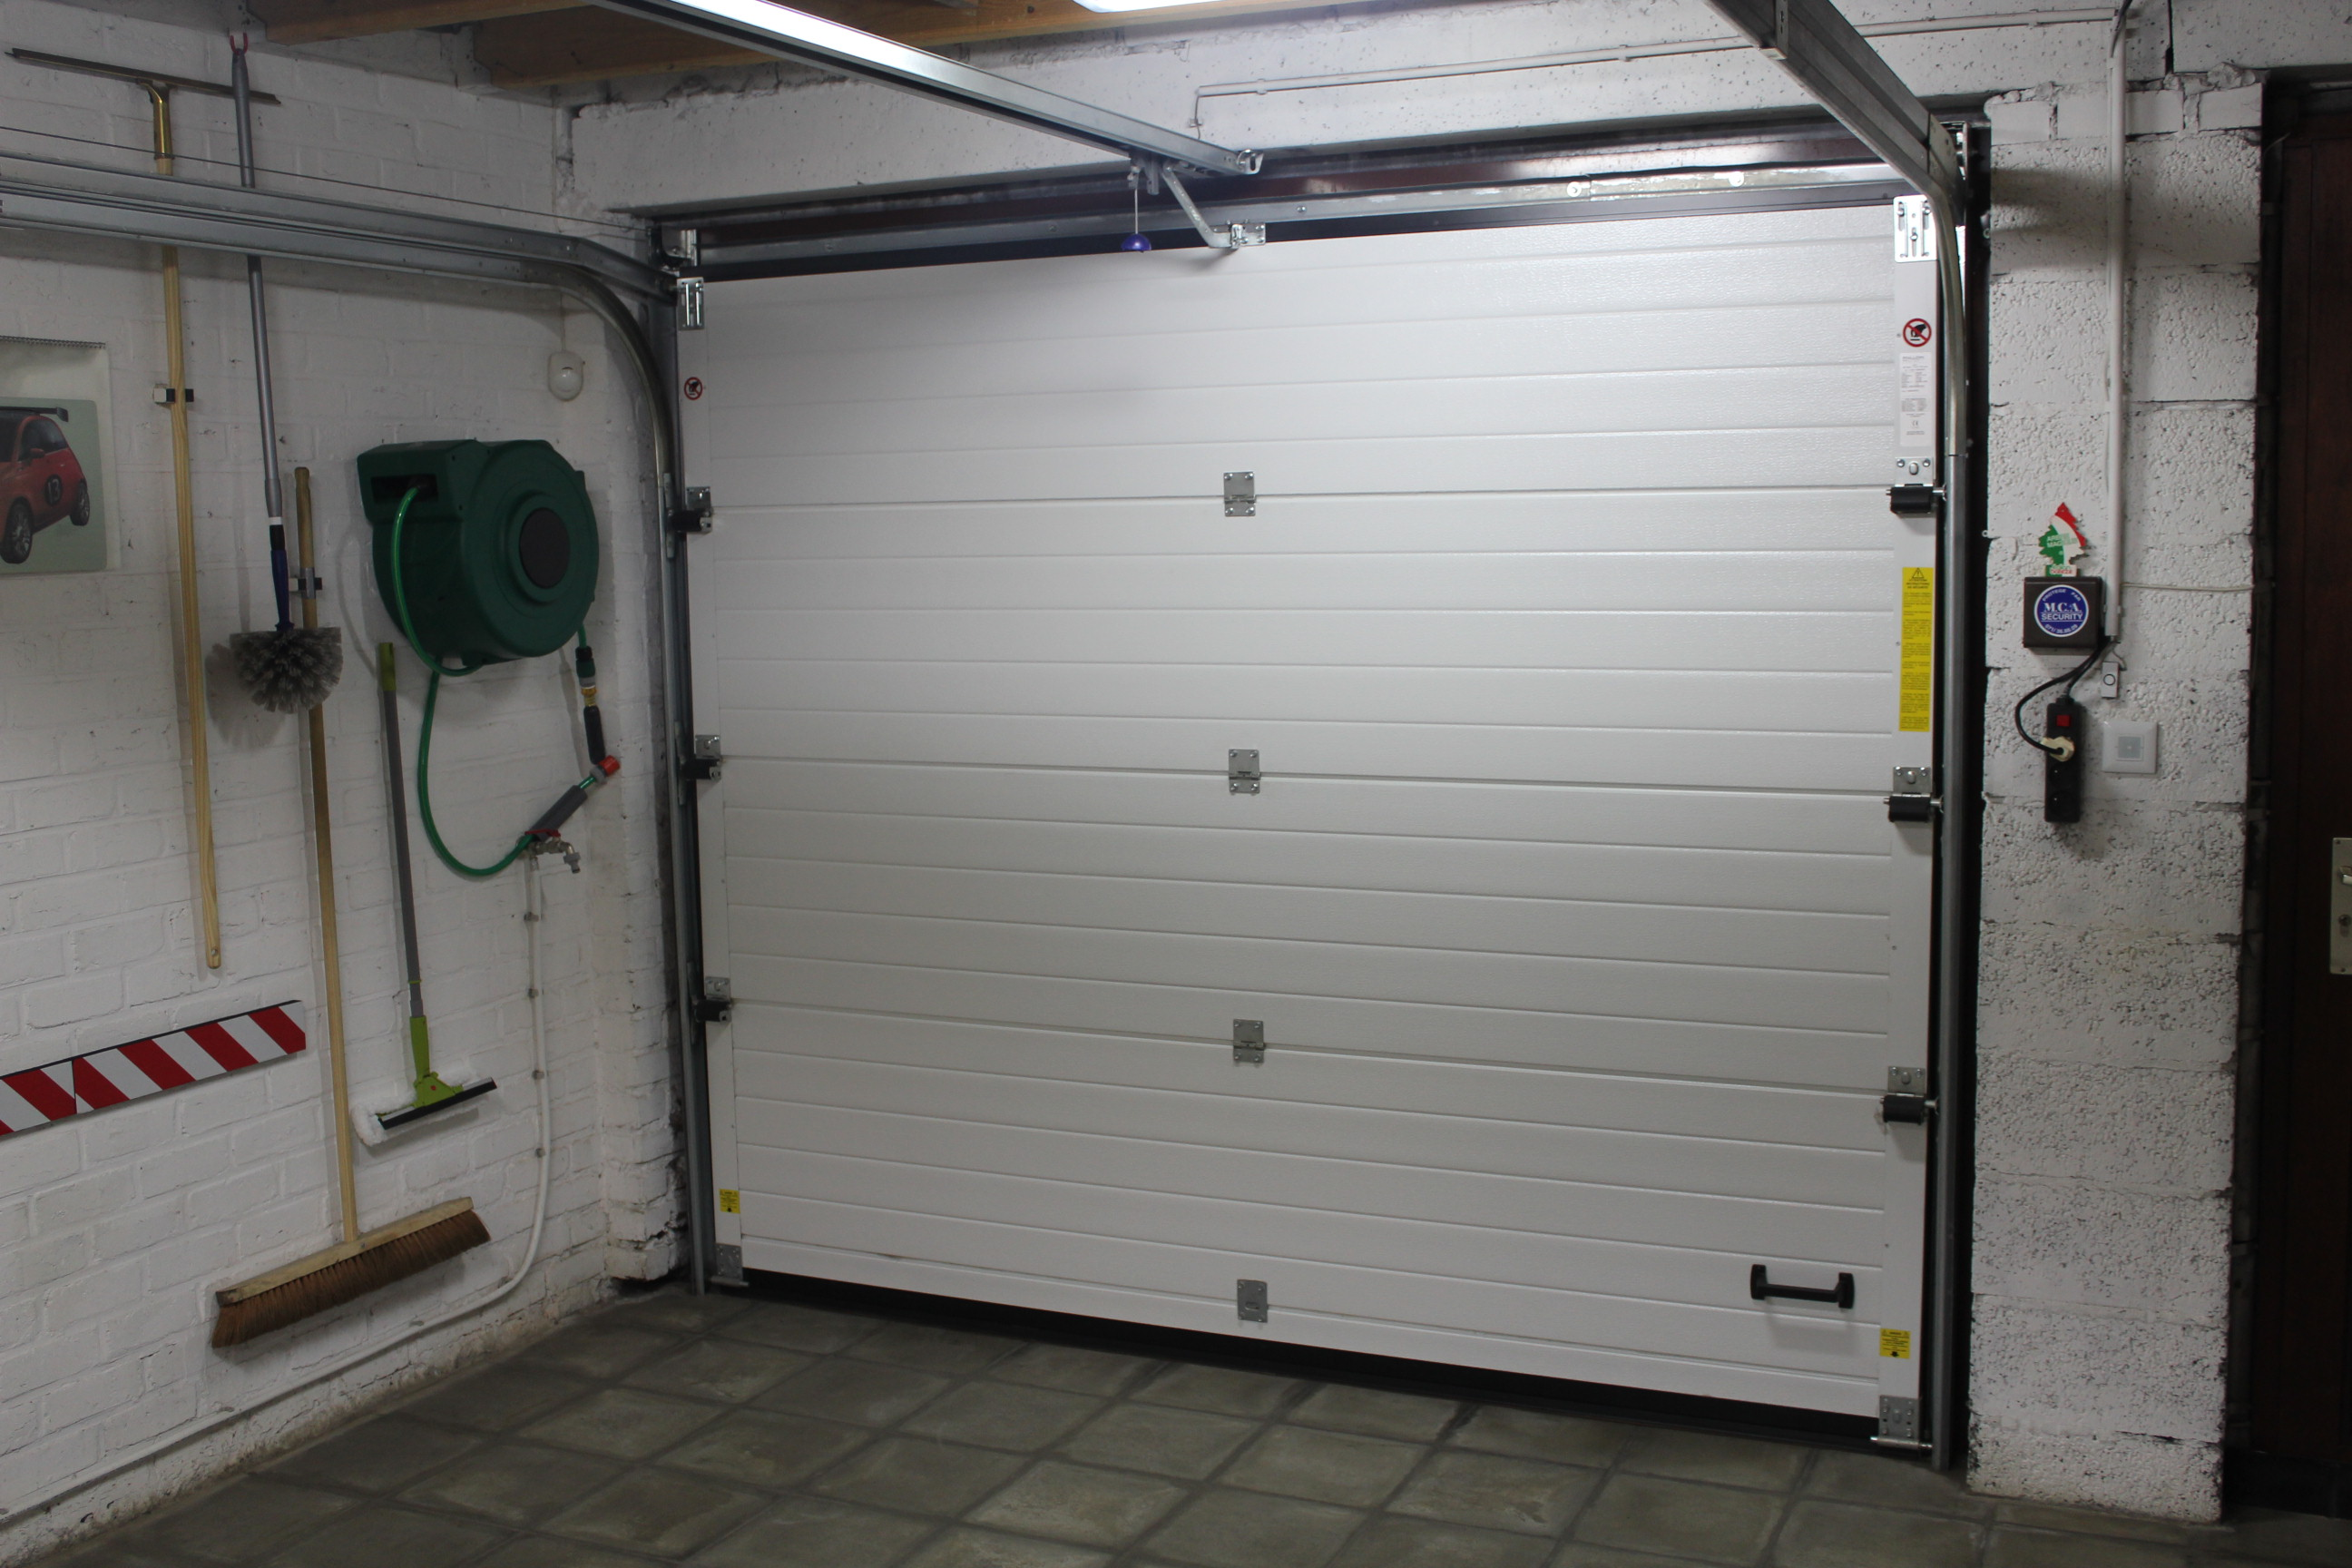 Placement de porte de garage sectionnelle et basculante - Rail pour porte de garage sectionnelle ...